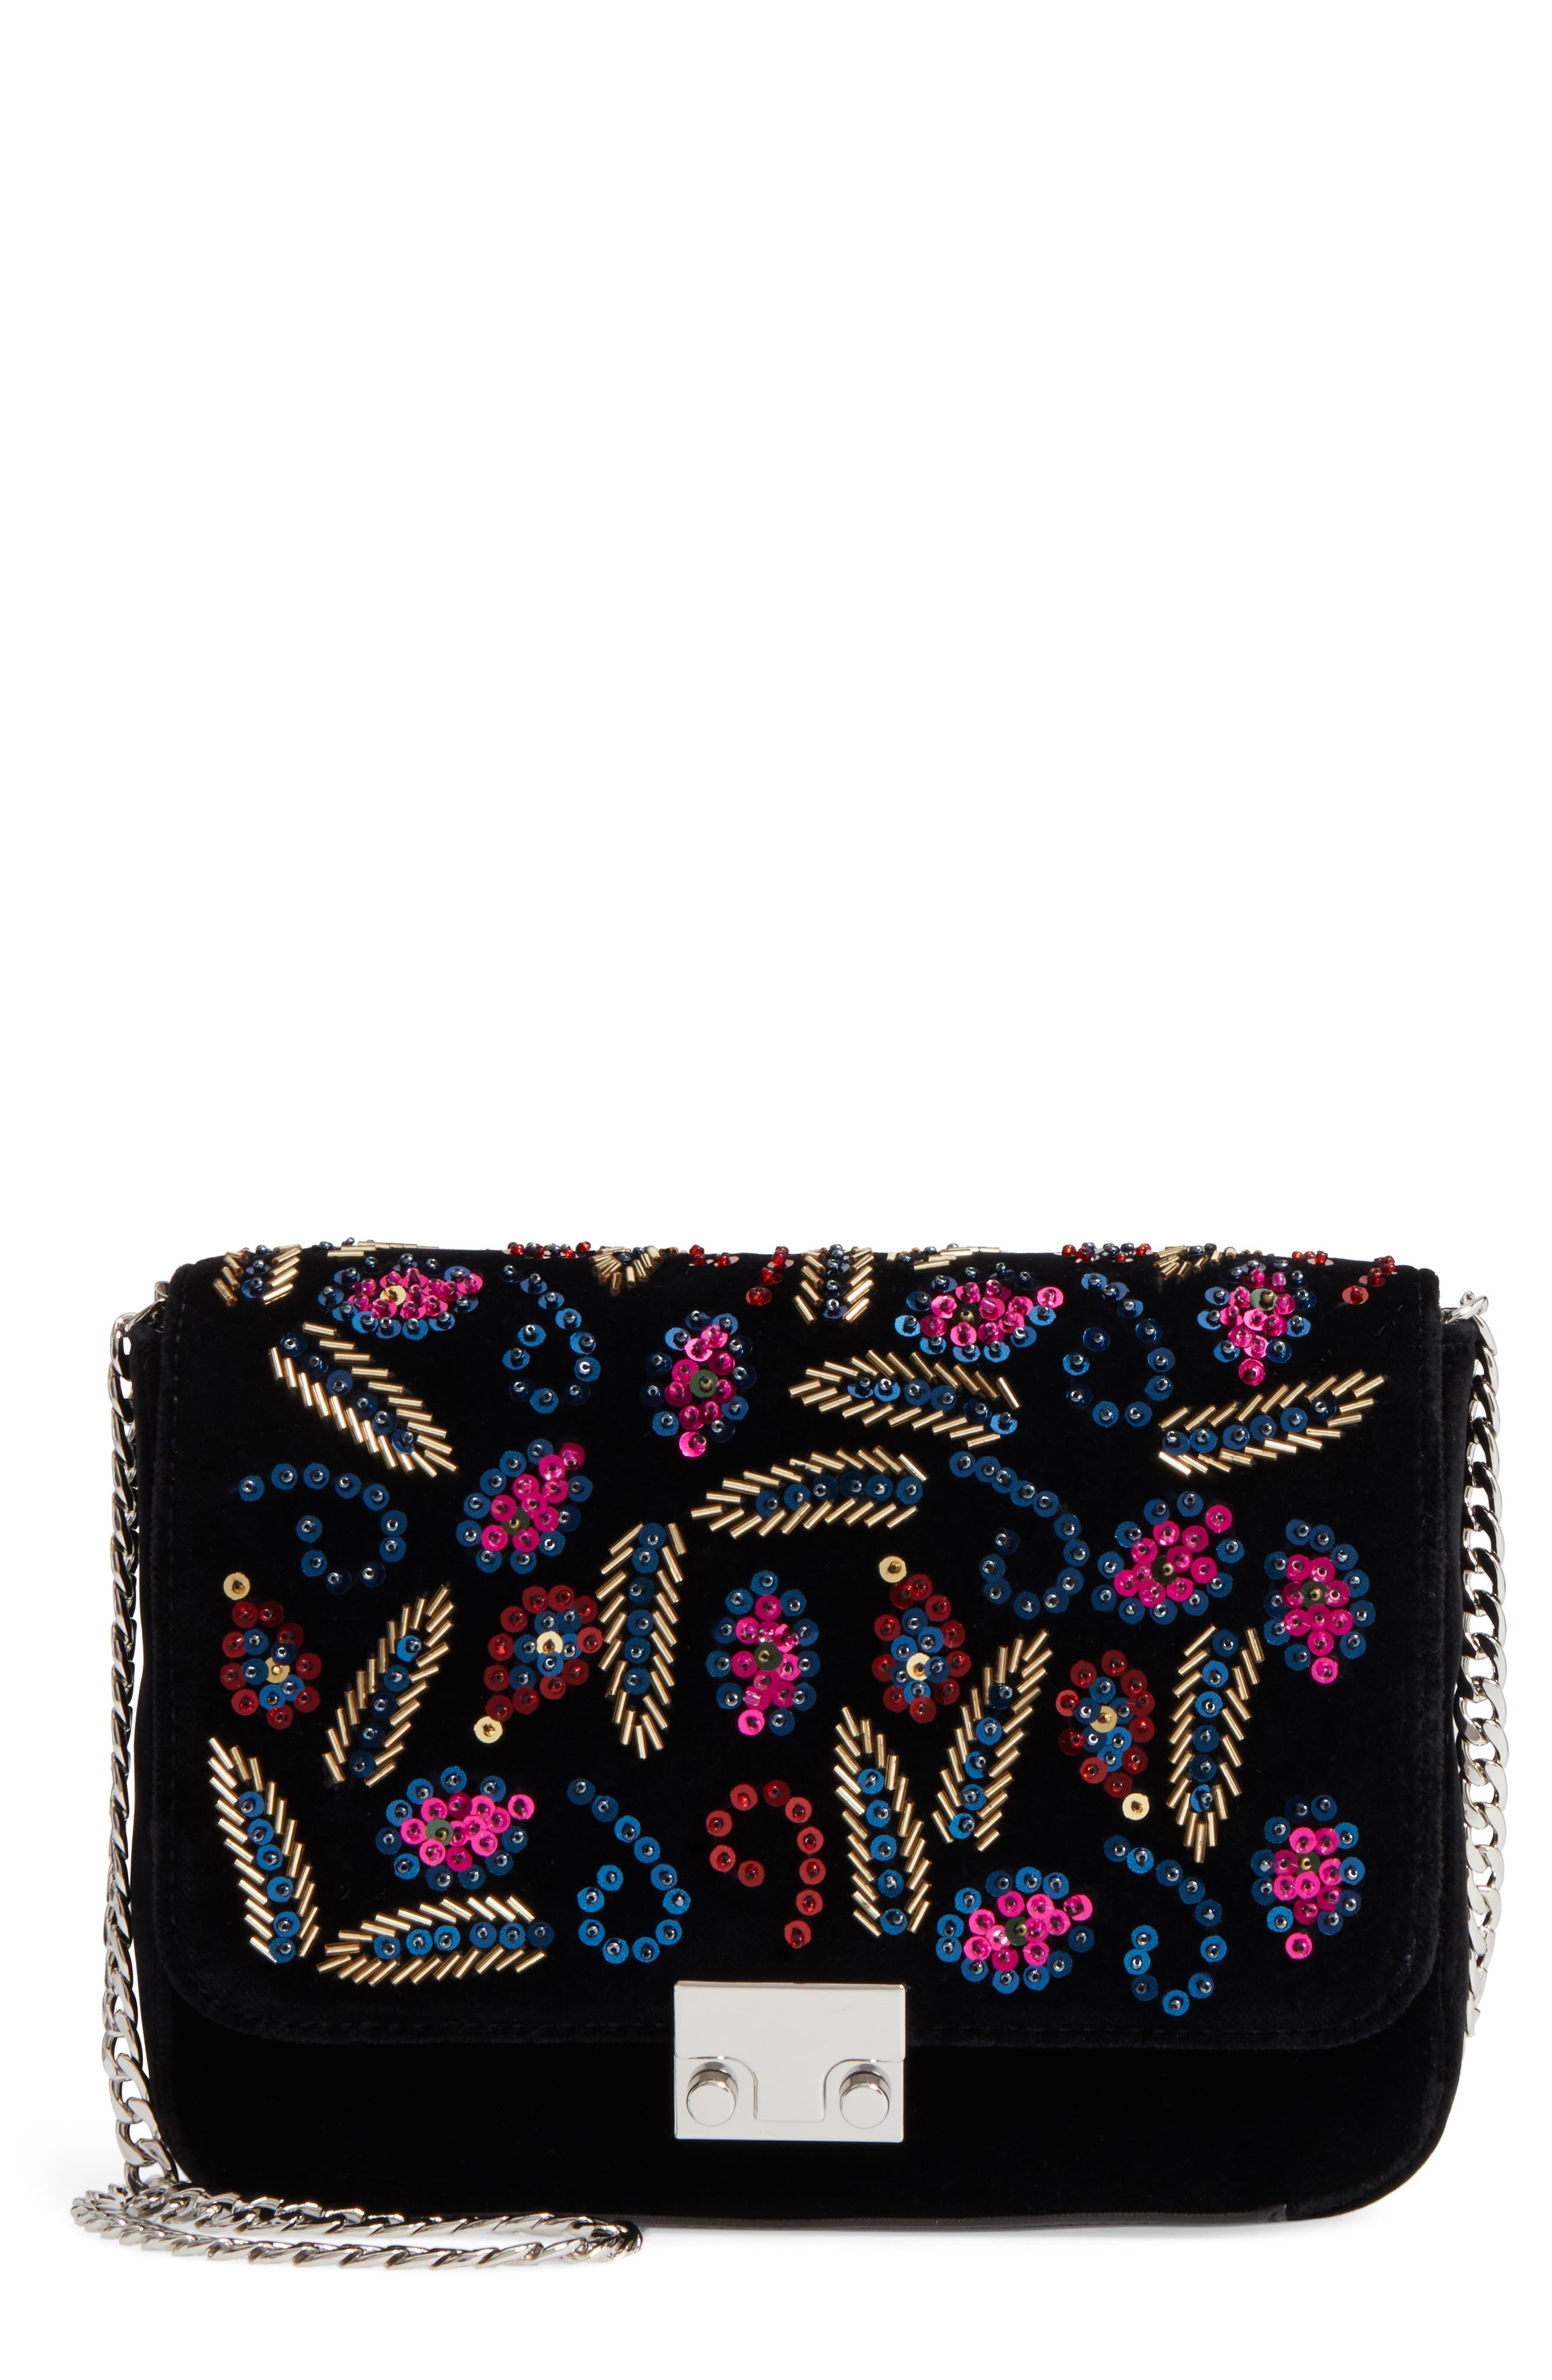 Loeffler Randal Lock Sequin Shoulder Bag